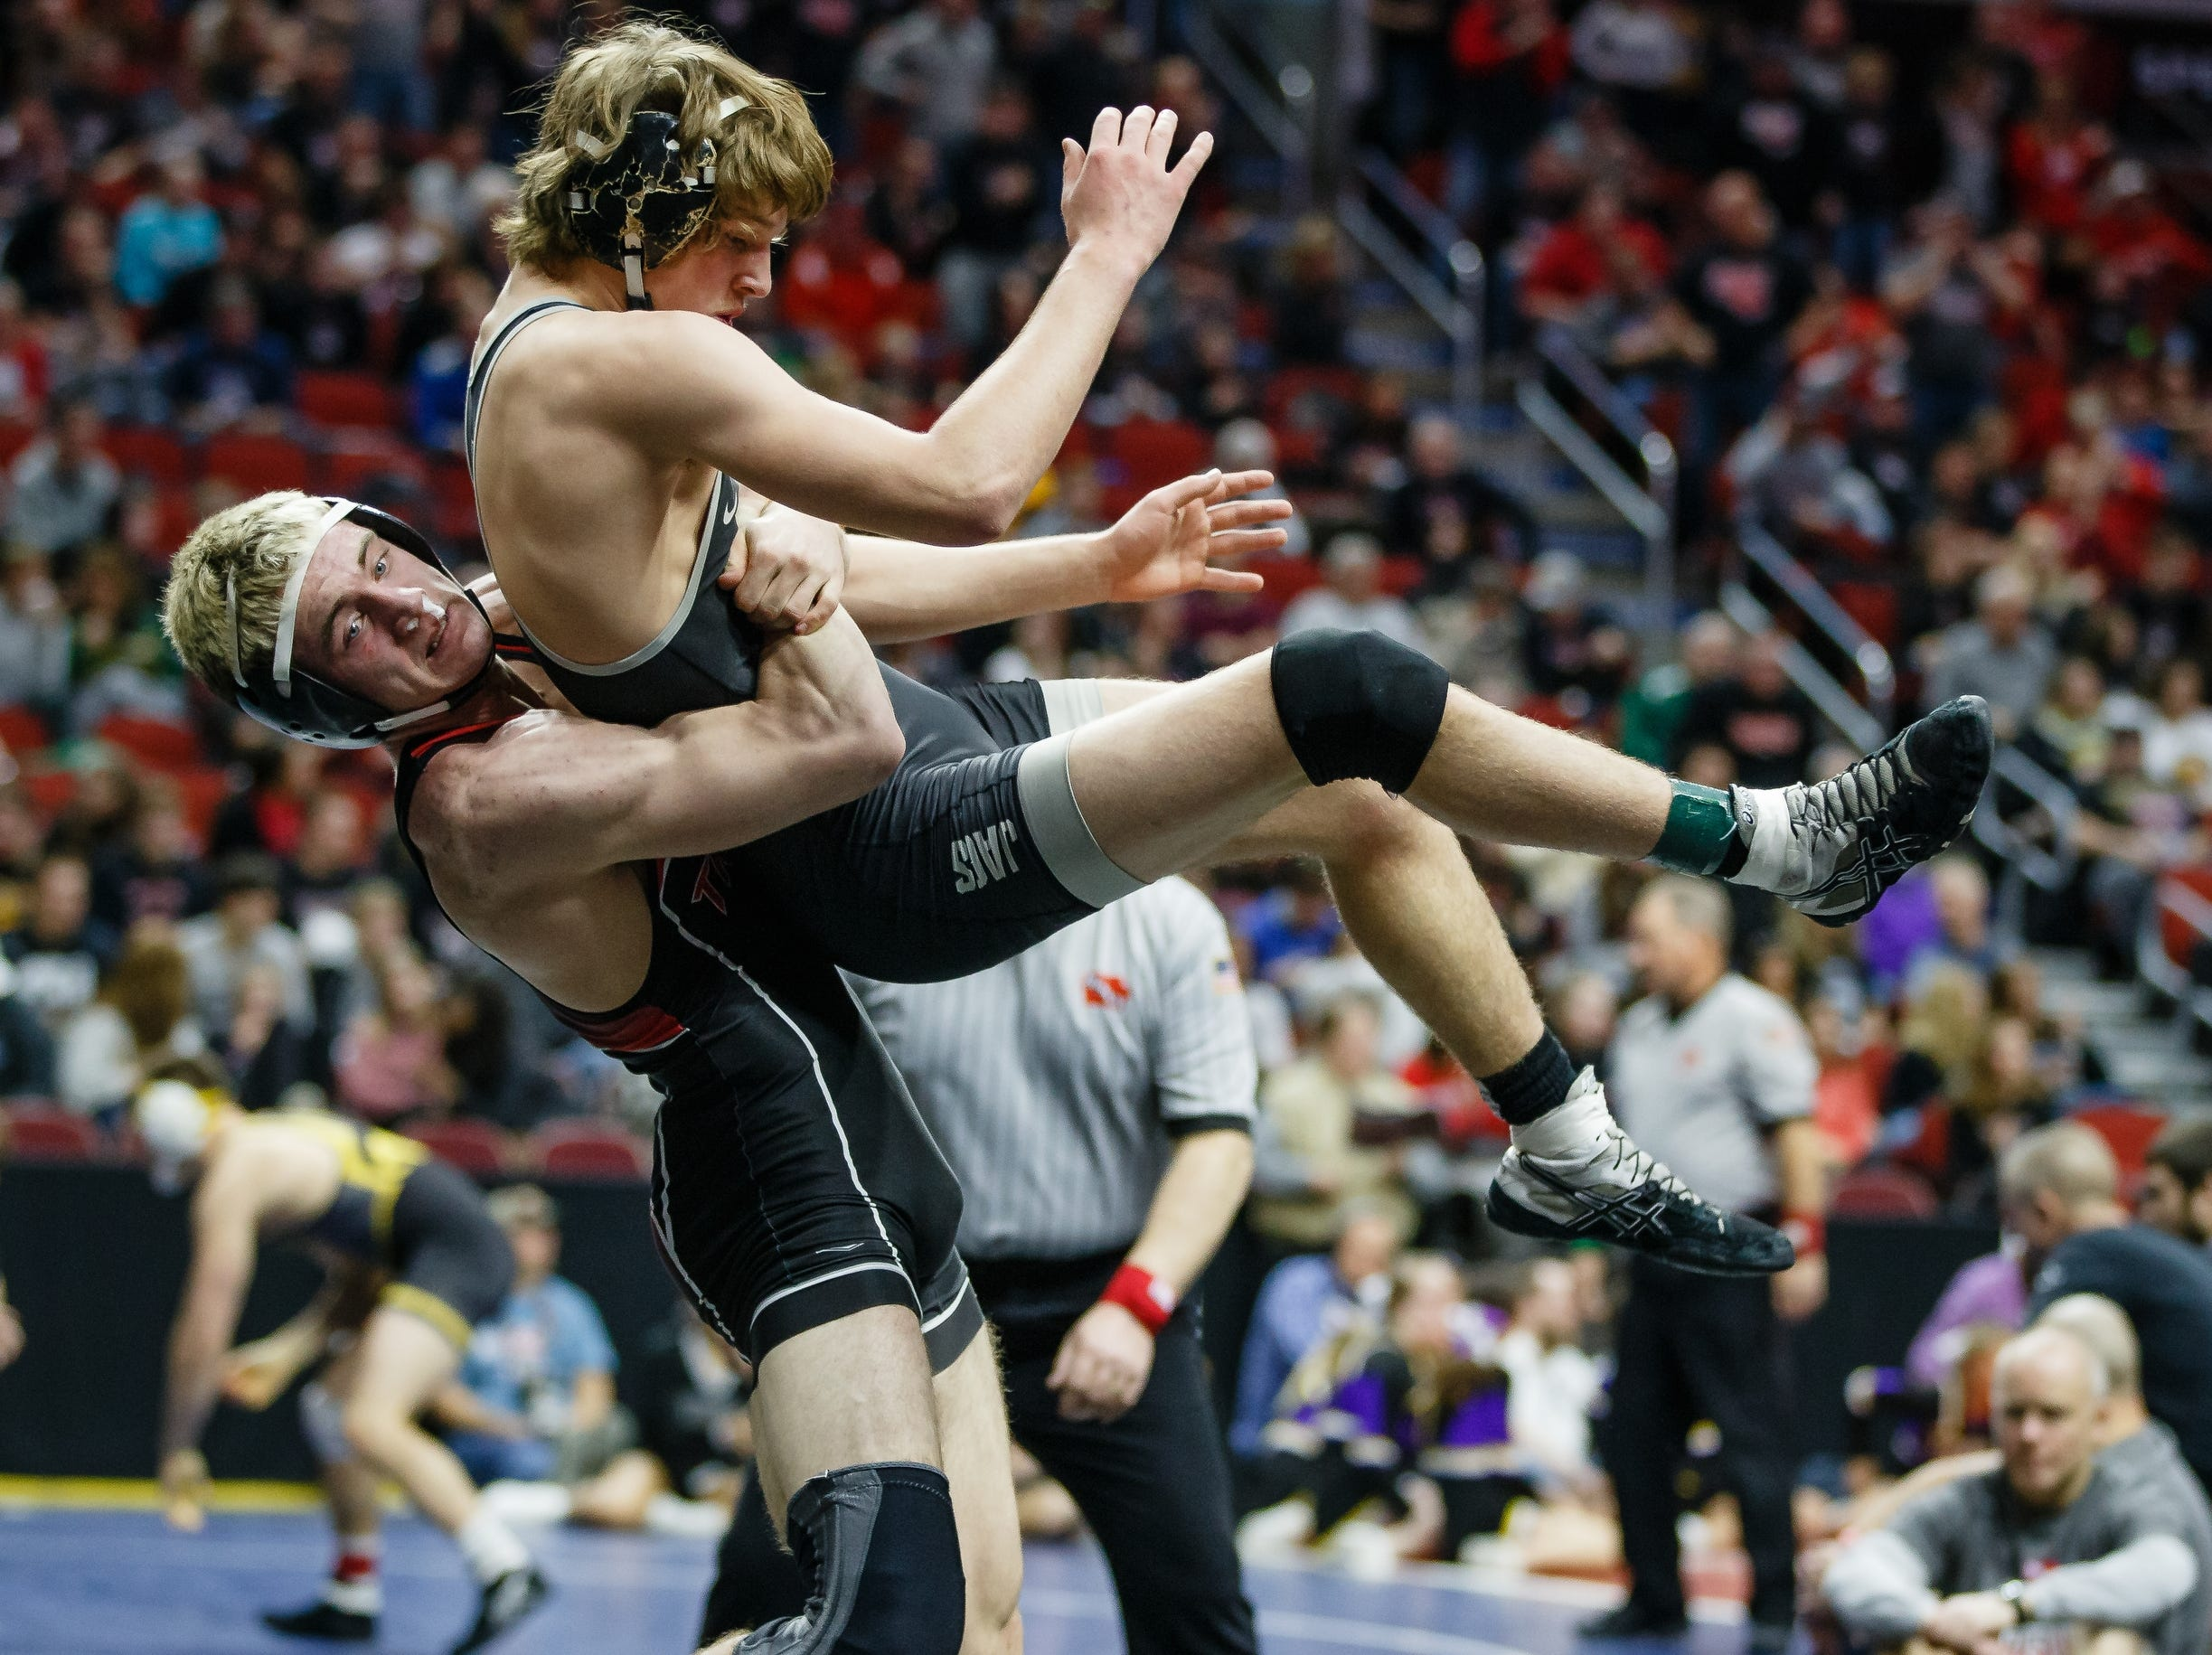 Dakota Southworth of Cedar Falls wrestles Logan Neils of Ankeny Centennial during their 3A 170 lb match at the state wrestling tournament on Thursday, Feb. 14, 2019 in Des Moines.